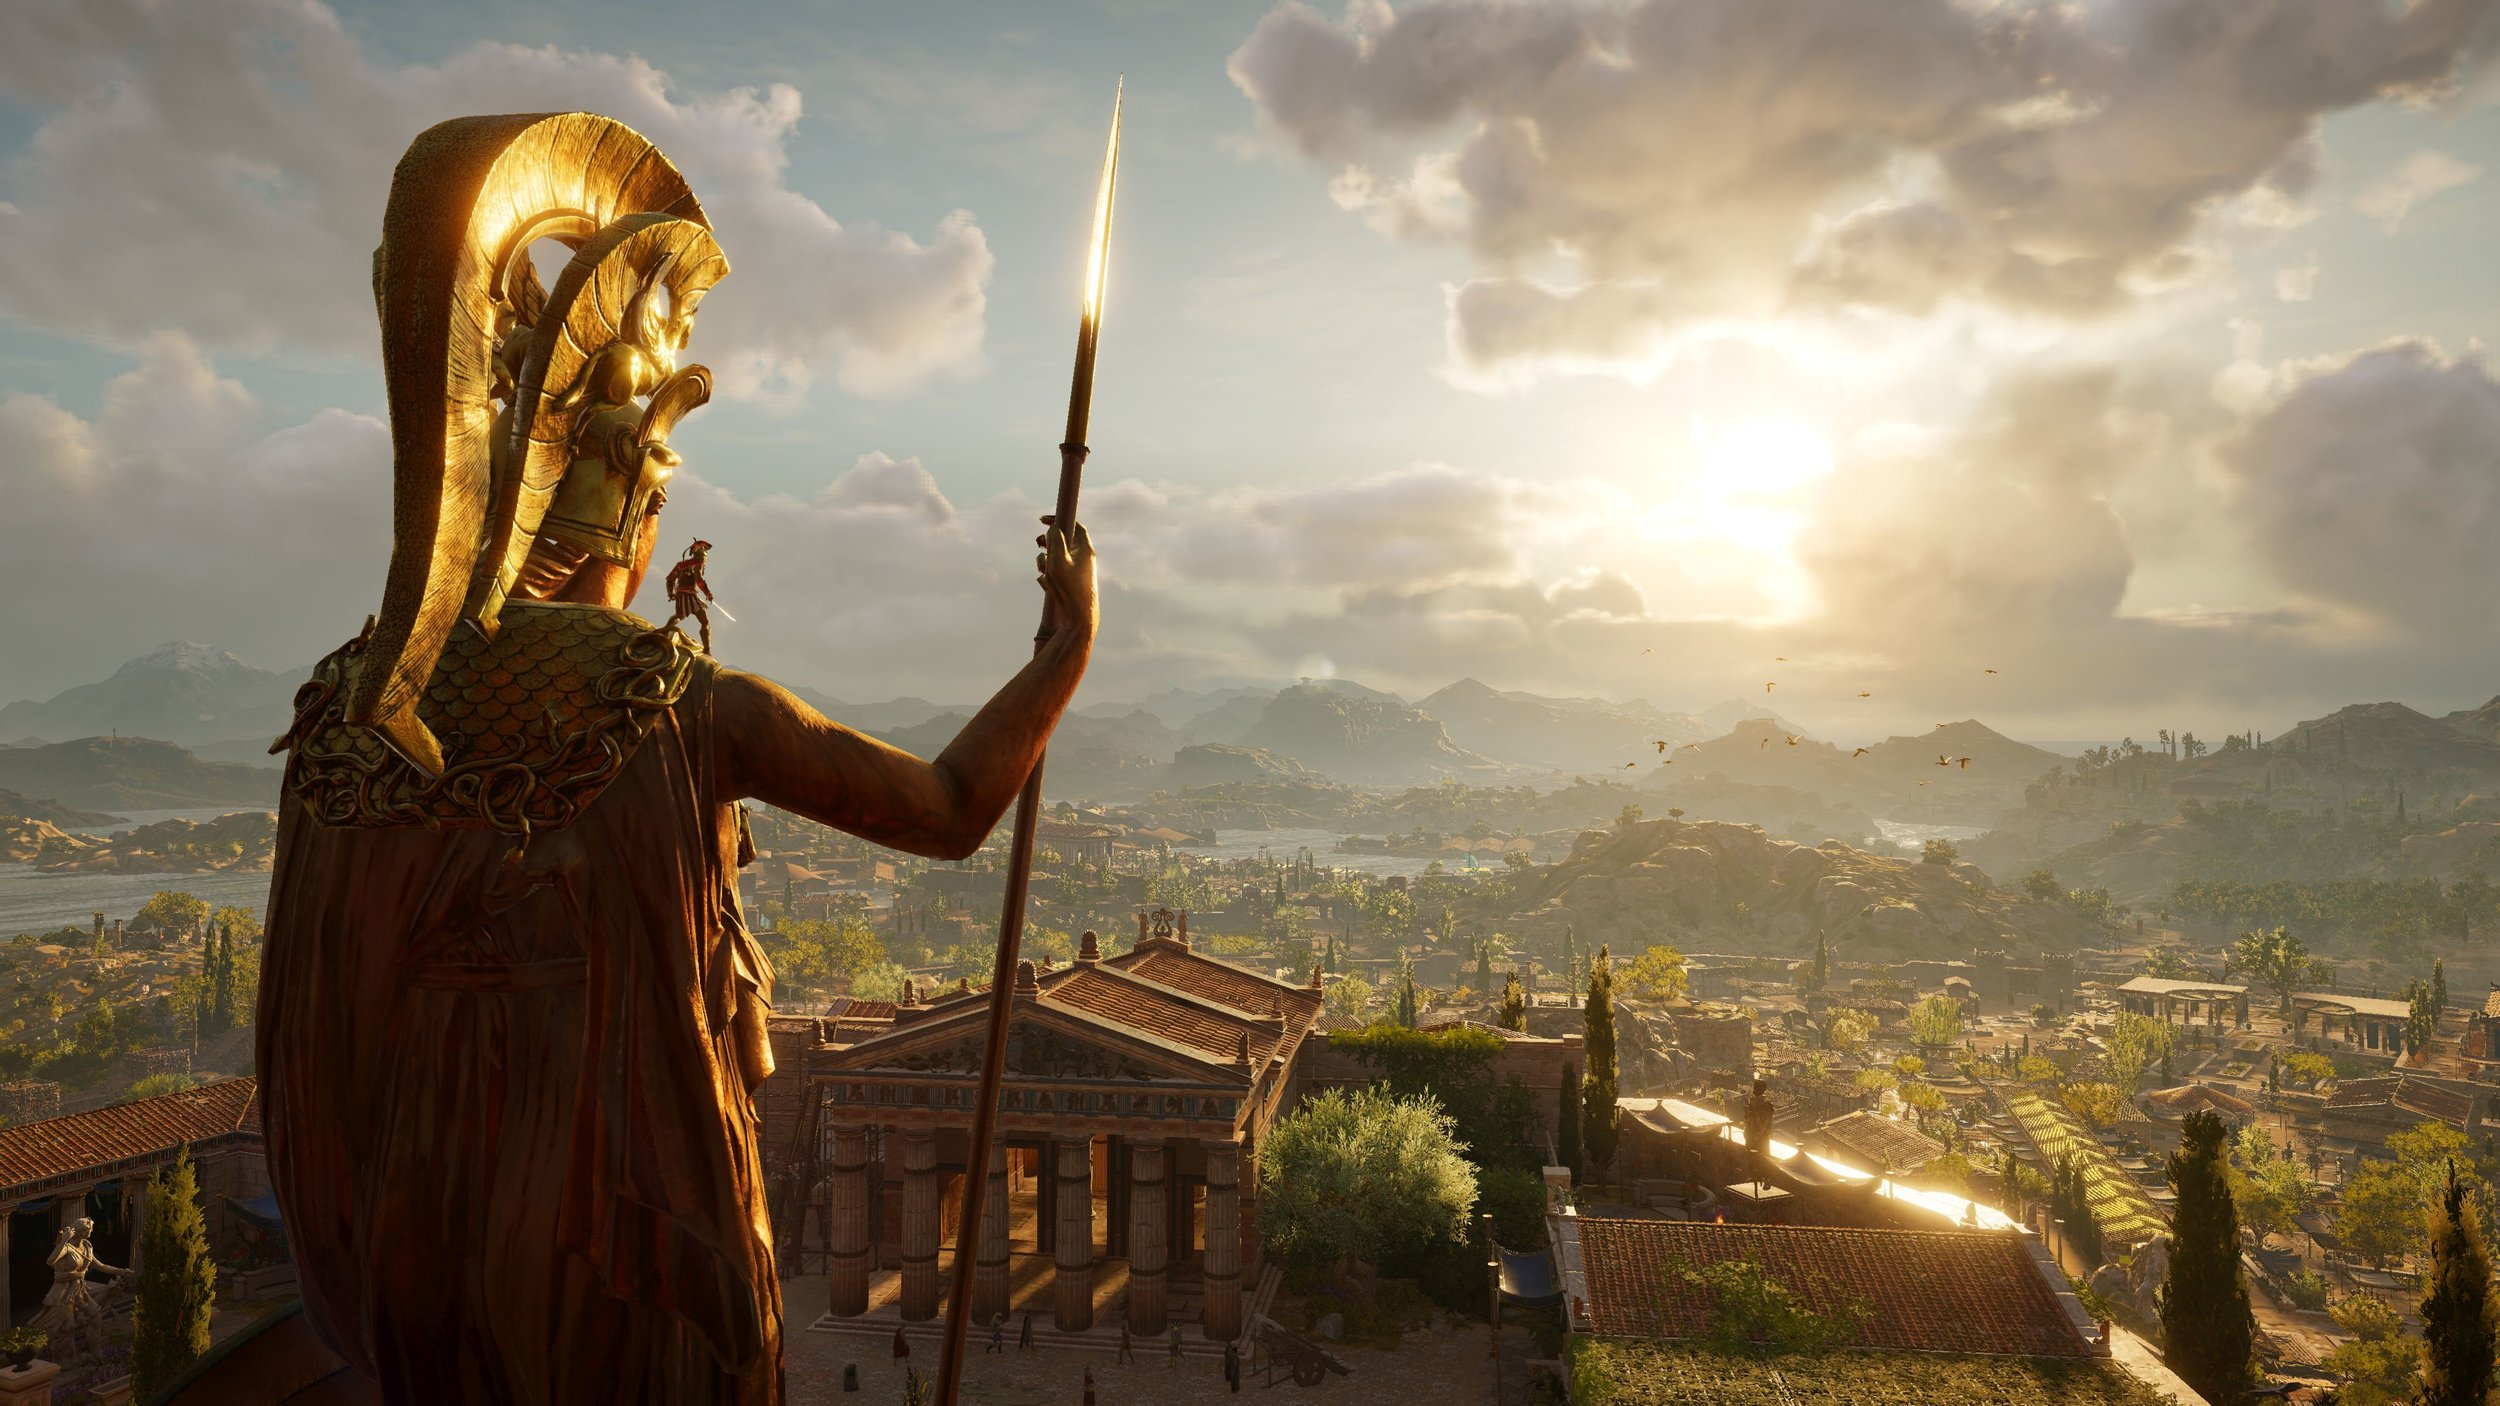 Assassin's Creed: Odyssey, set in Ancient Greece